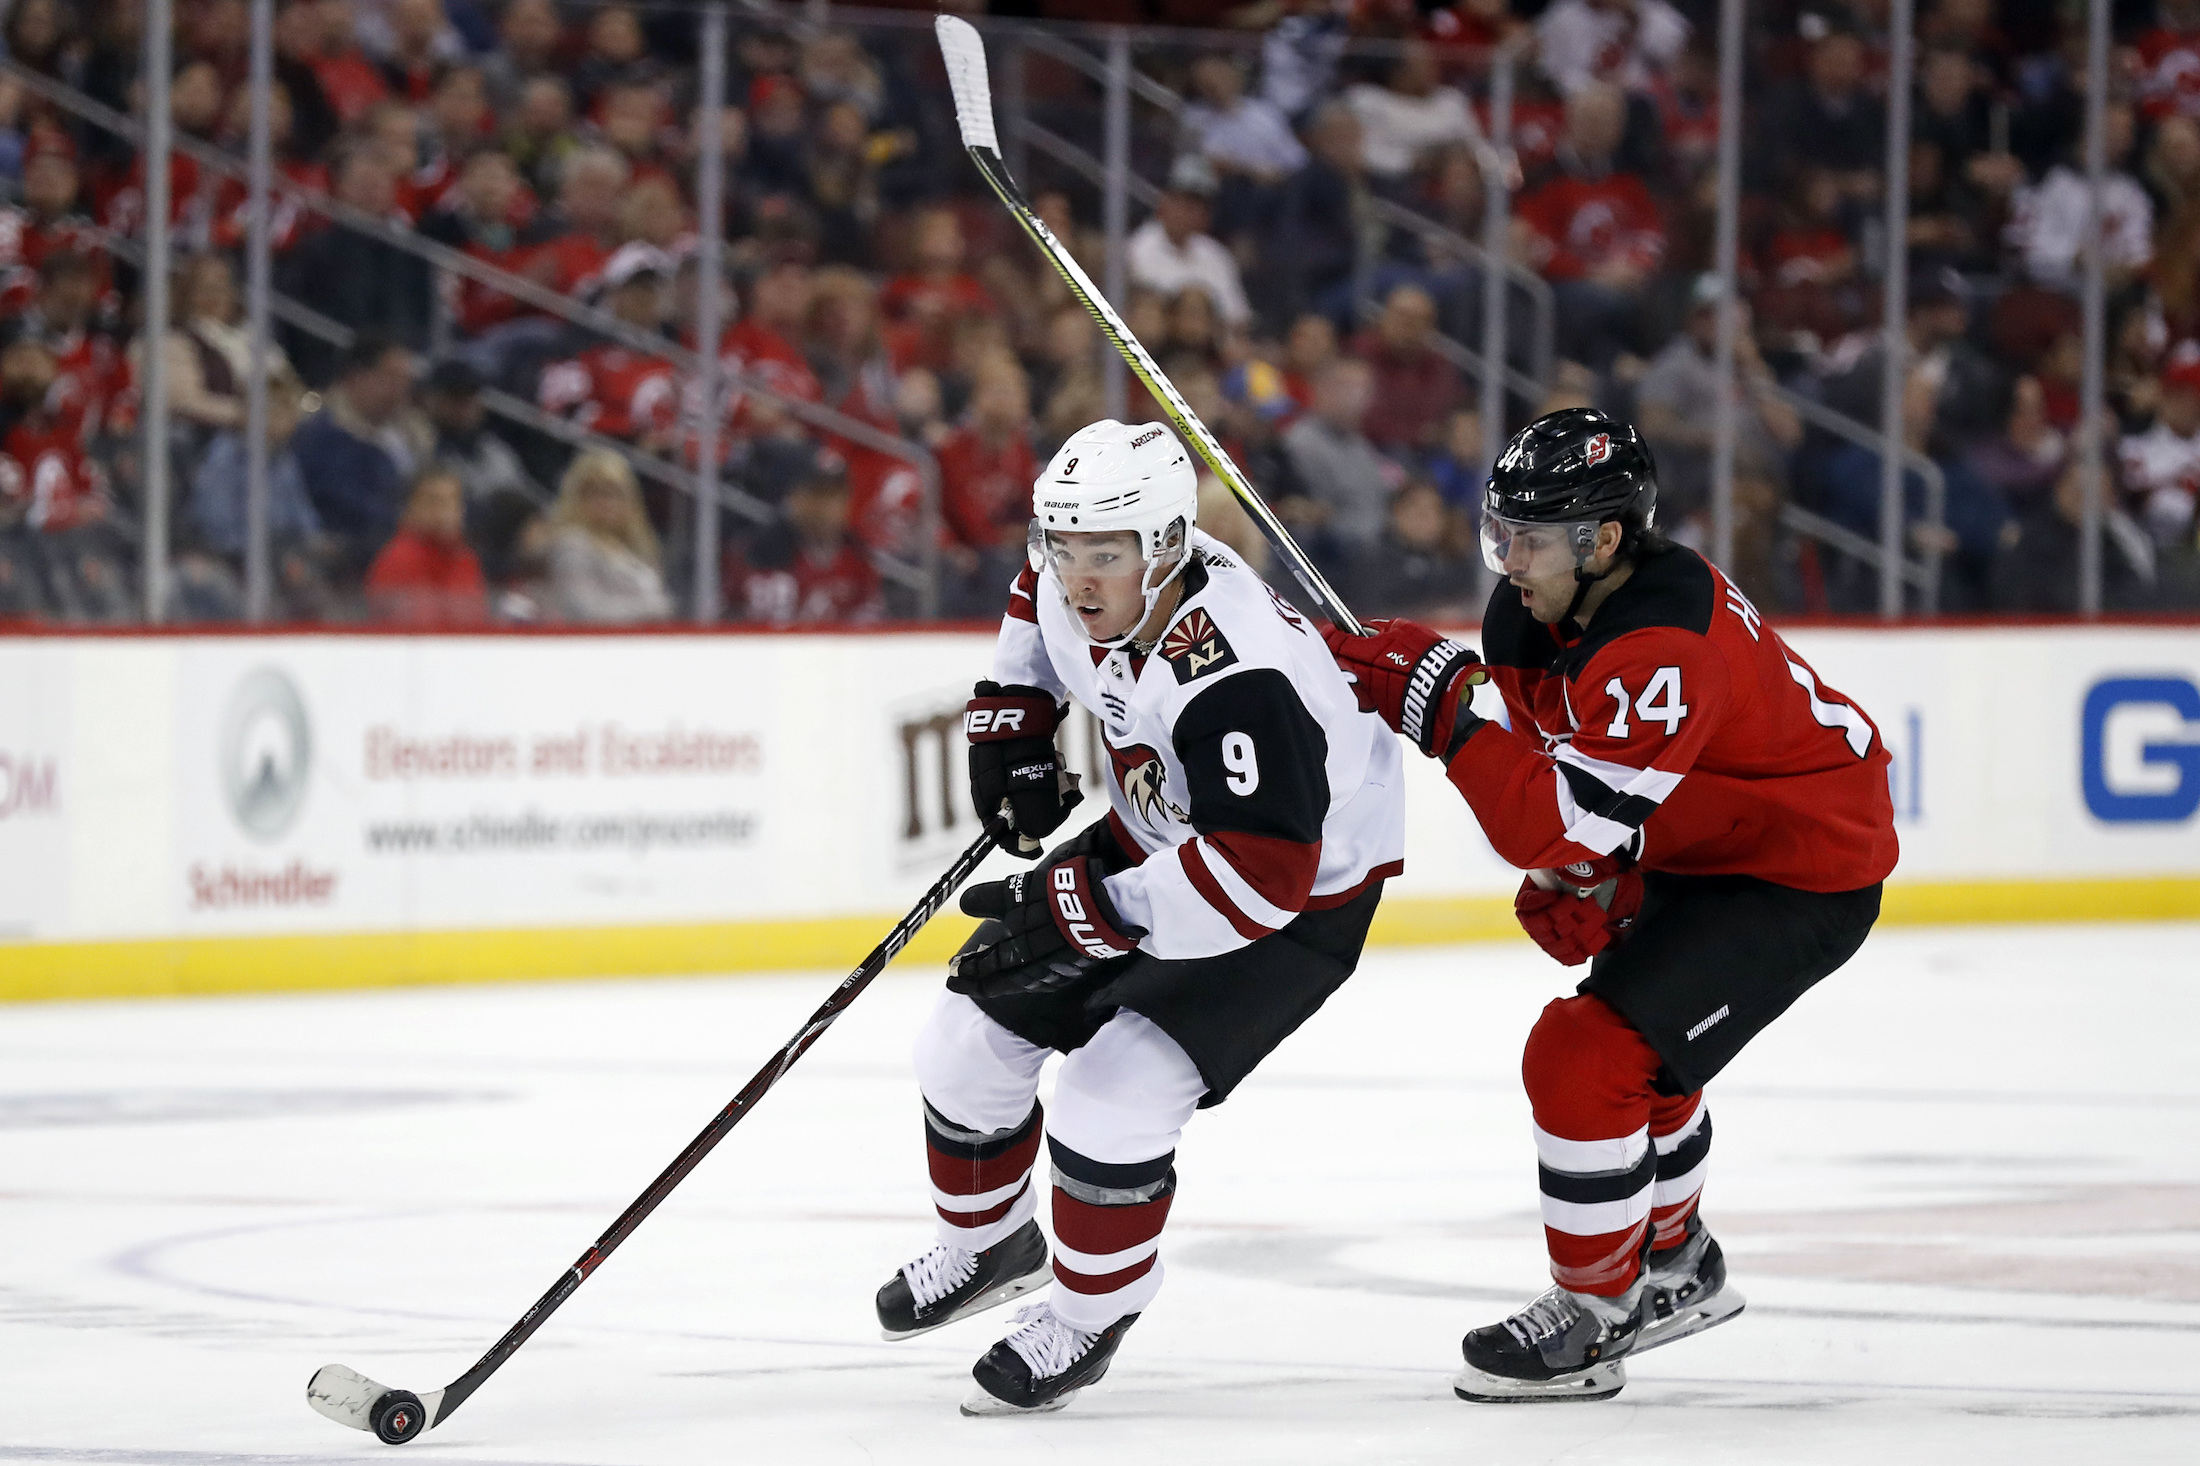 Arizona Coyotes'Clayton Keller (9) controls the puck past New Jersey Devils' Adam Henrique during the first period of an NHL hockey game, Saturday, Oct. 28, 2017, in Newark, N.J. (AP Photo/Adam Hunger)